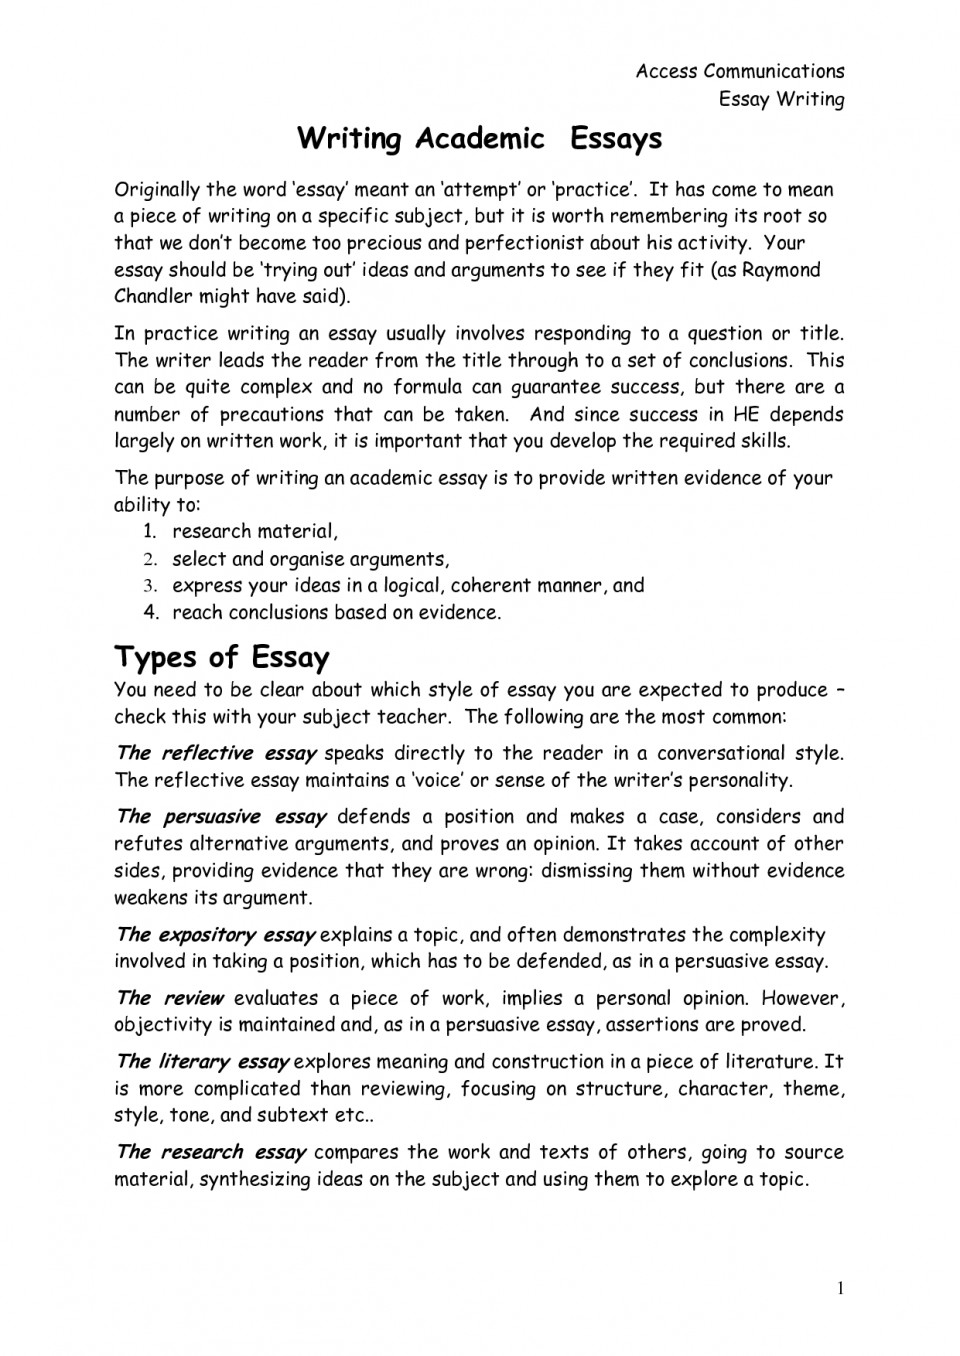 016 Reflective Essay On Academic Writings Beautiful Examples English Pdf For Middle School Writing Class 960